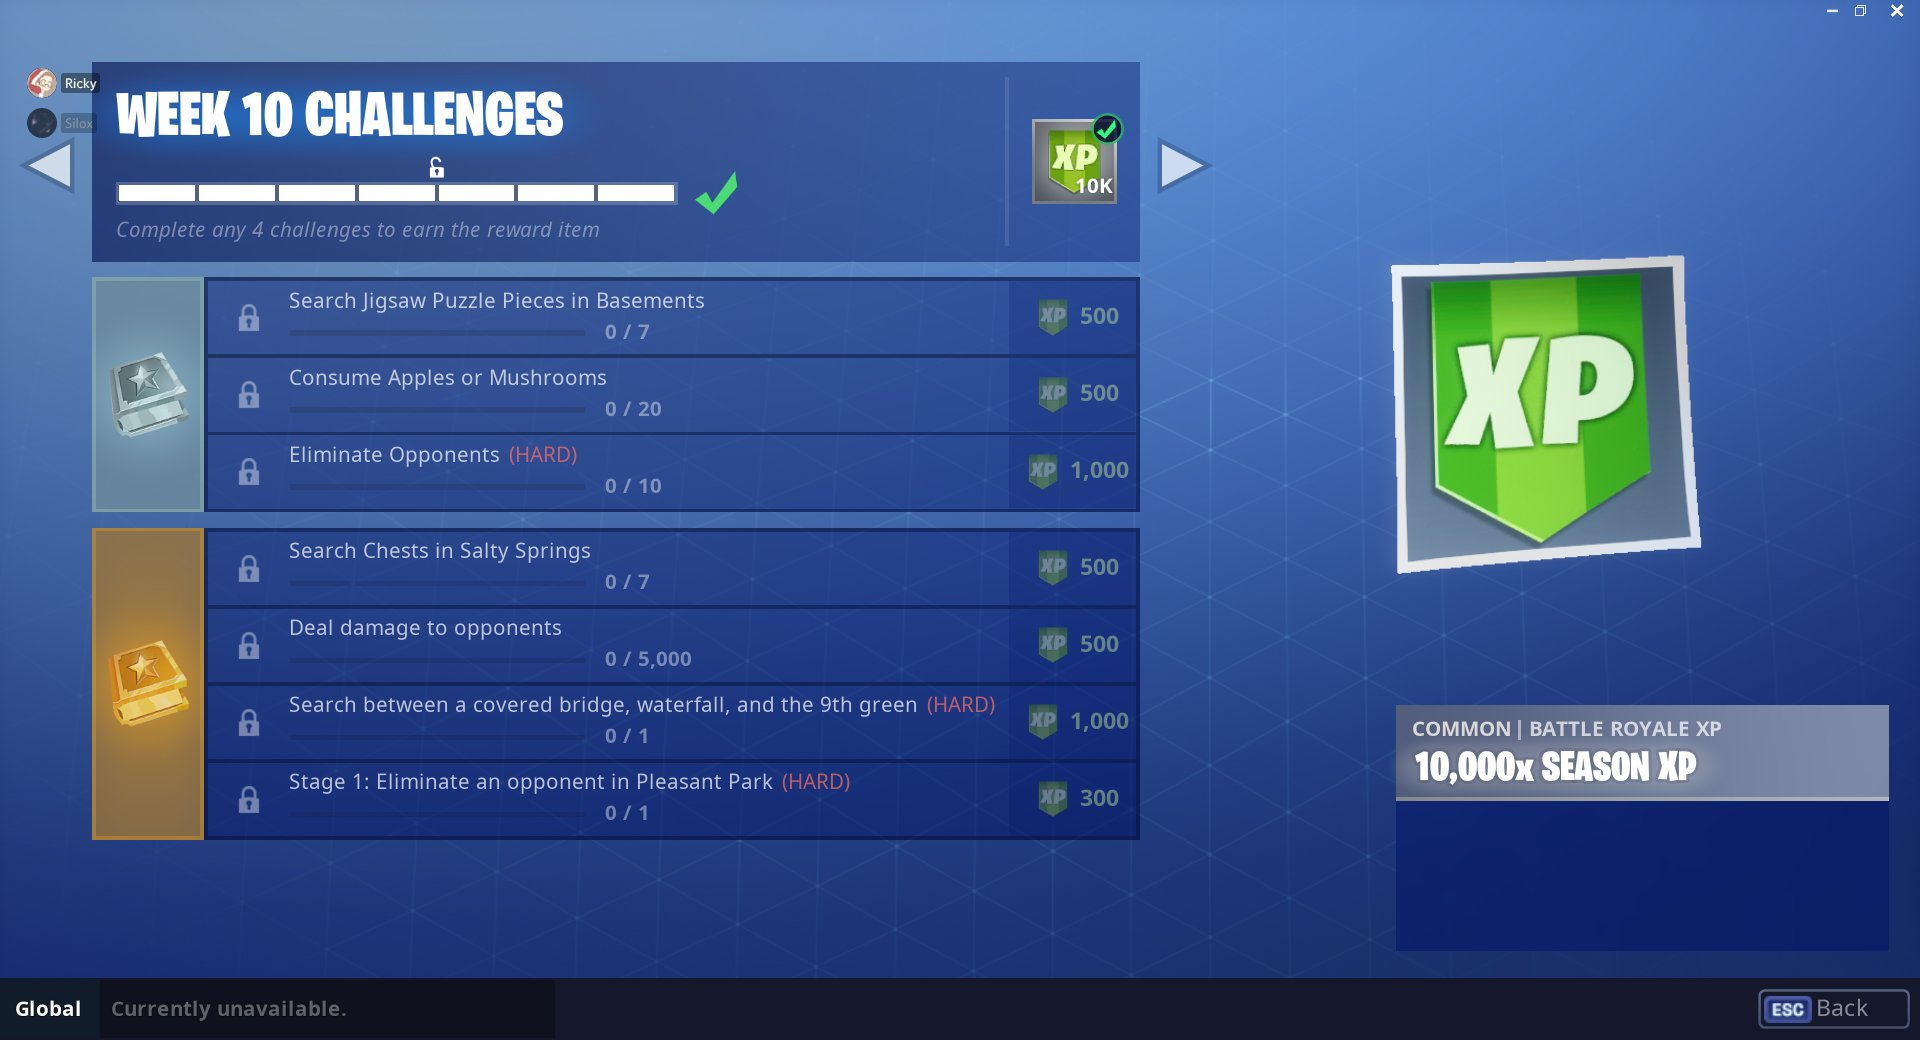 Fortnite Leaked Challenges for Season 5, Week 10